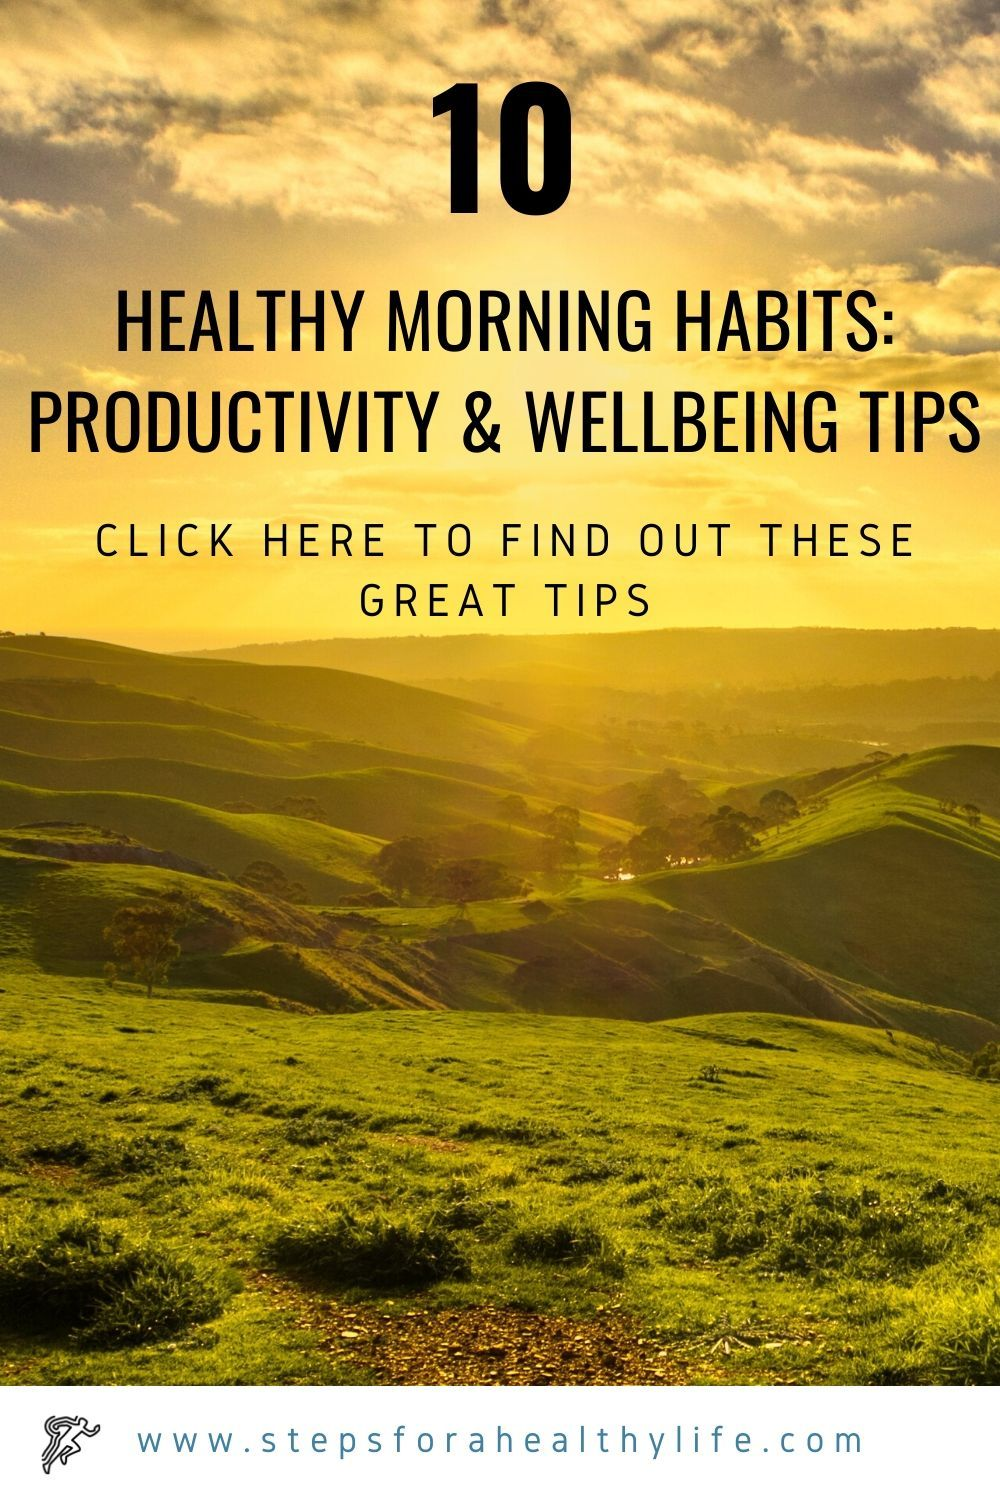 Best 10 Tips For Morning Routine: Productivity & Wellbeing 🛣